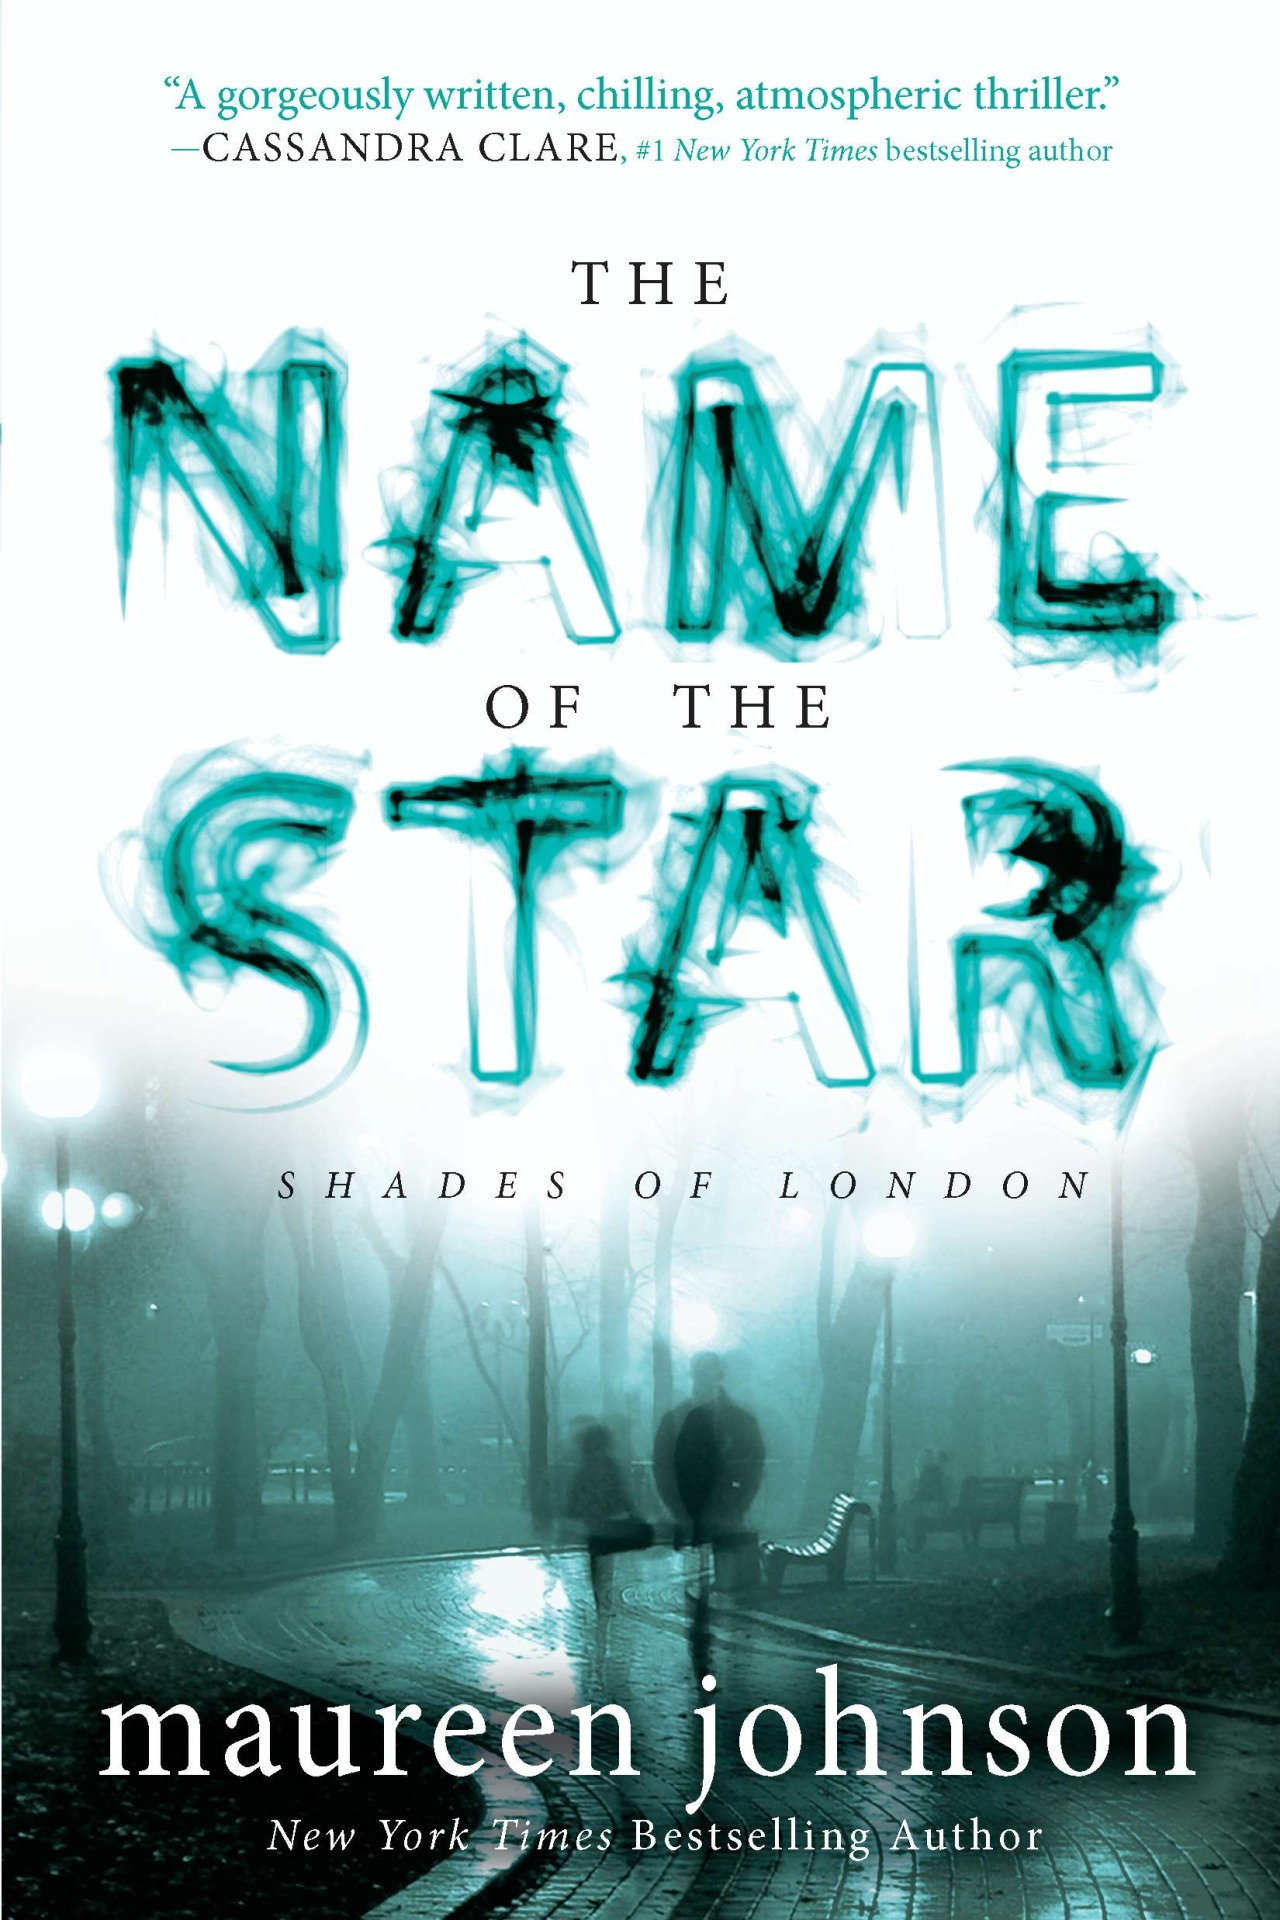 penguinteen: Daily Deal alert! Maureen Johnson's THE NAME OF THE STAR will be only $2.99 on this coming Sunday, 2/24 wherever ebooks are sold! Purchase THE NAME OF THE STAR here: Penguin Amazon Barnes & Noble Kobo iBookstore